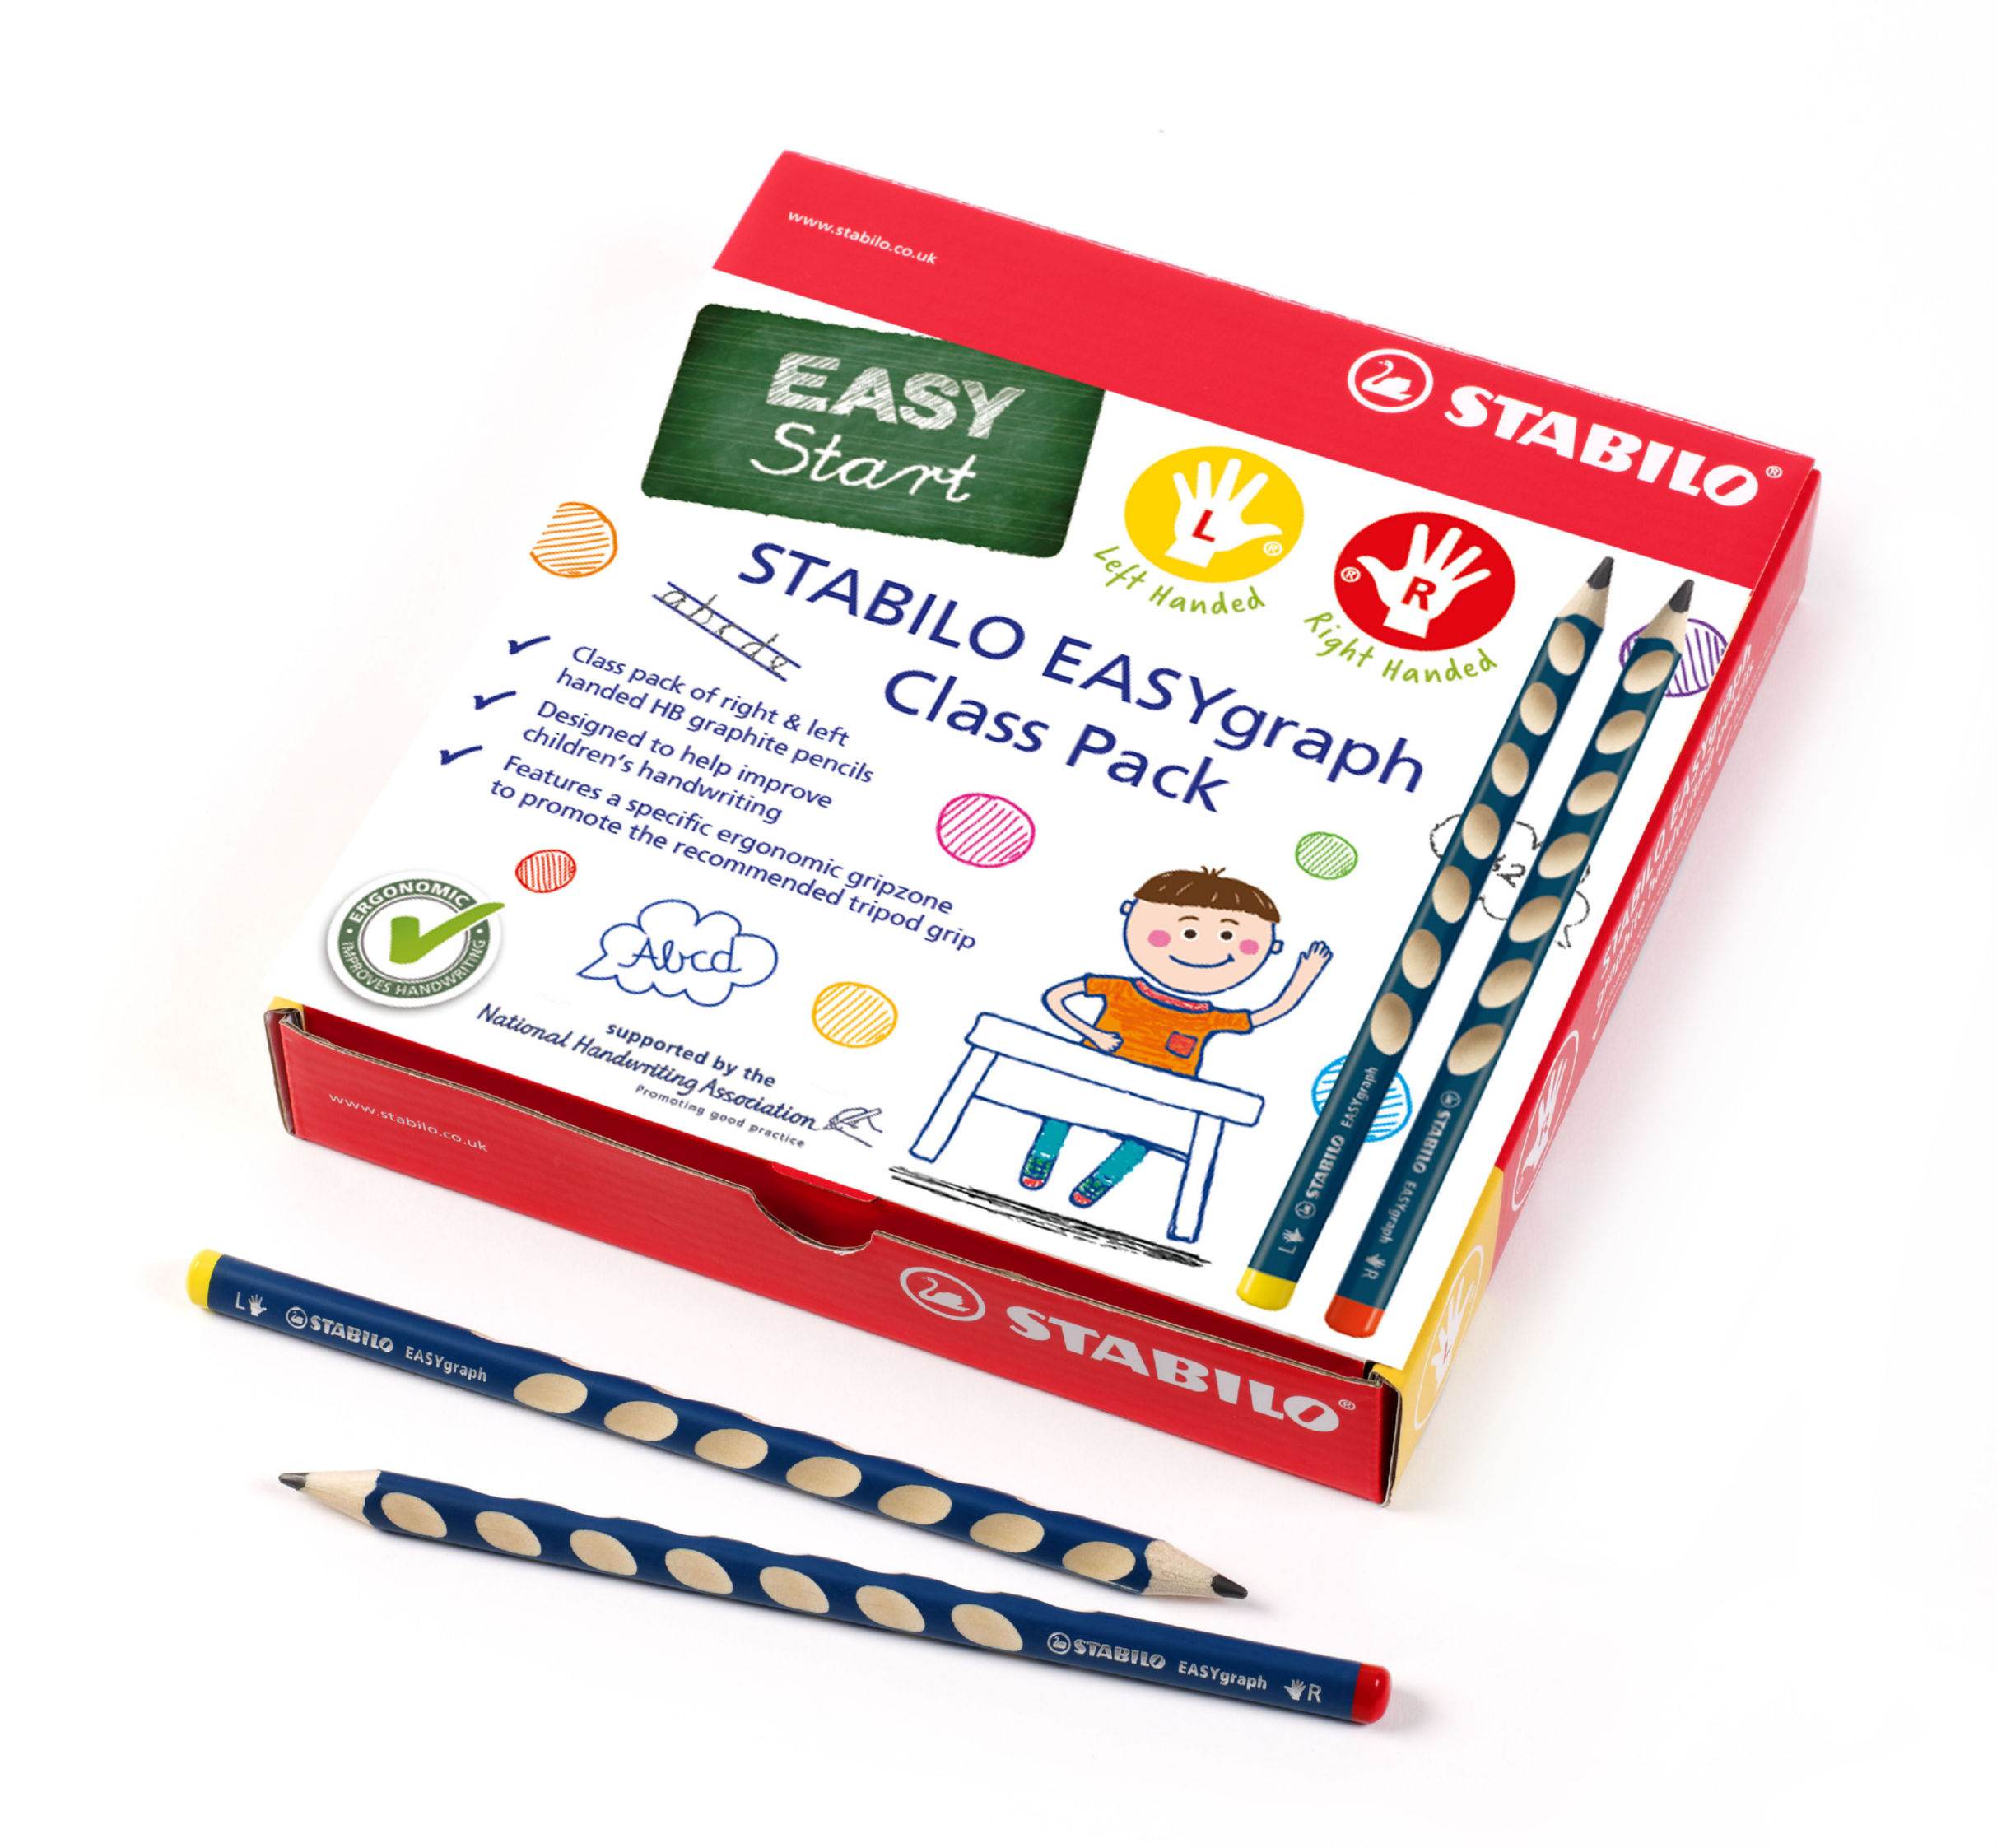 Pencils (Wood Case) Stabilo EASYgraph HB Pencil Classpack 40 Right and 8 Left